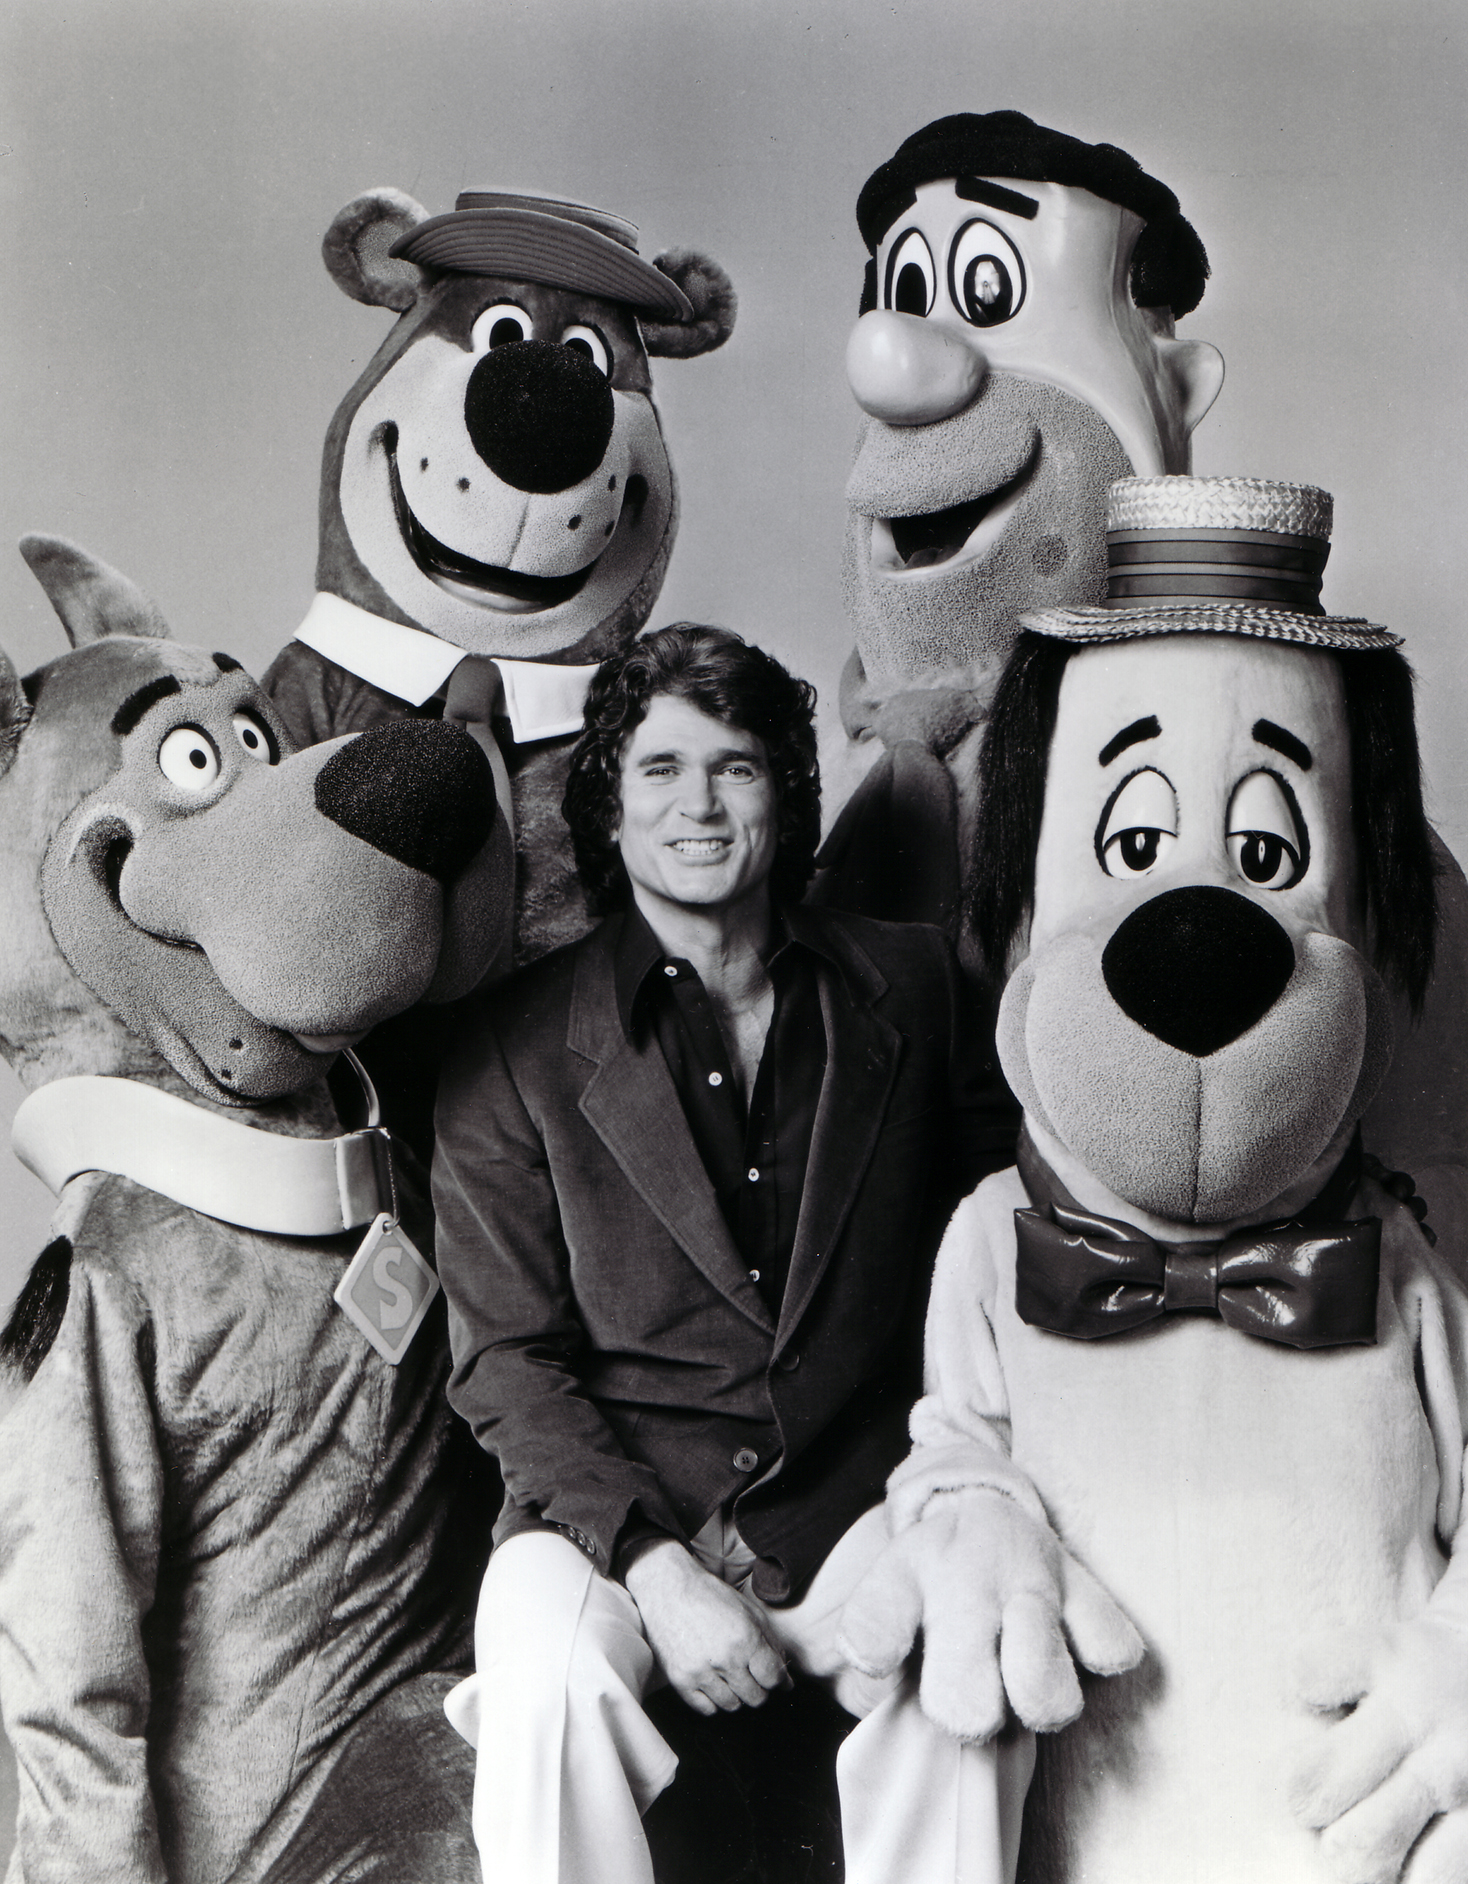 THE FUNTASTIC WORLD OF HANNA BARBERA ARENA SHOW WITH MICHAEL LANDON